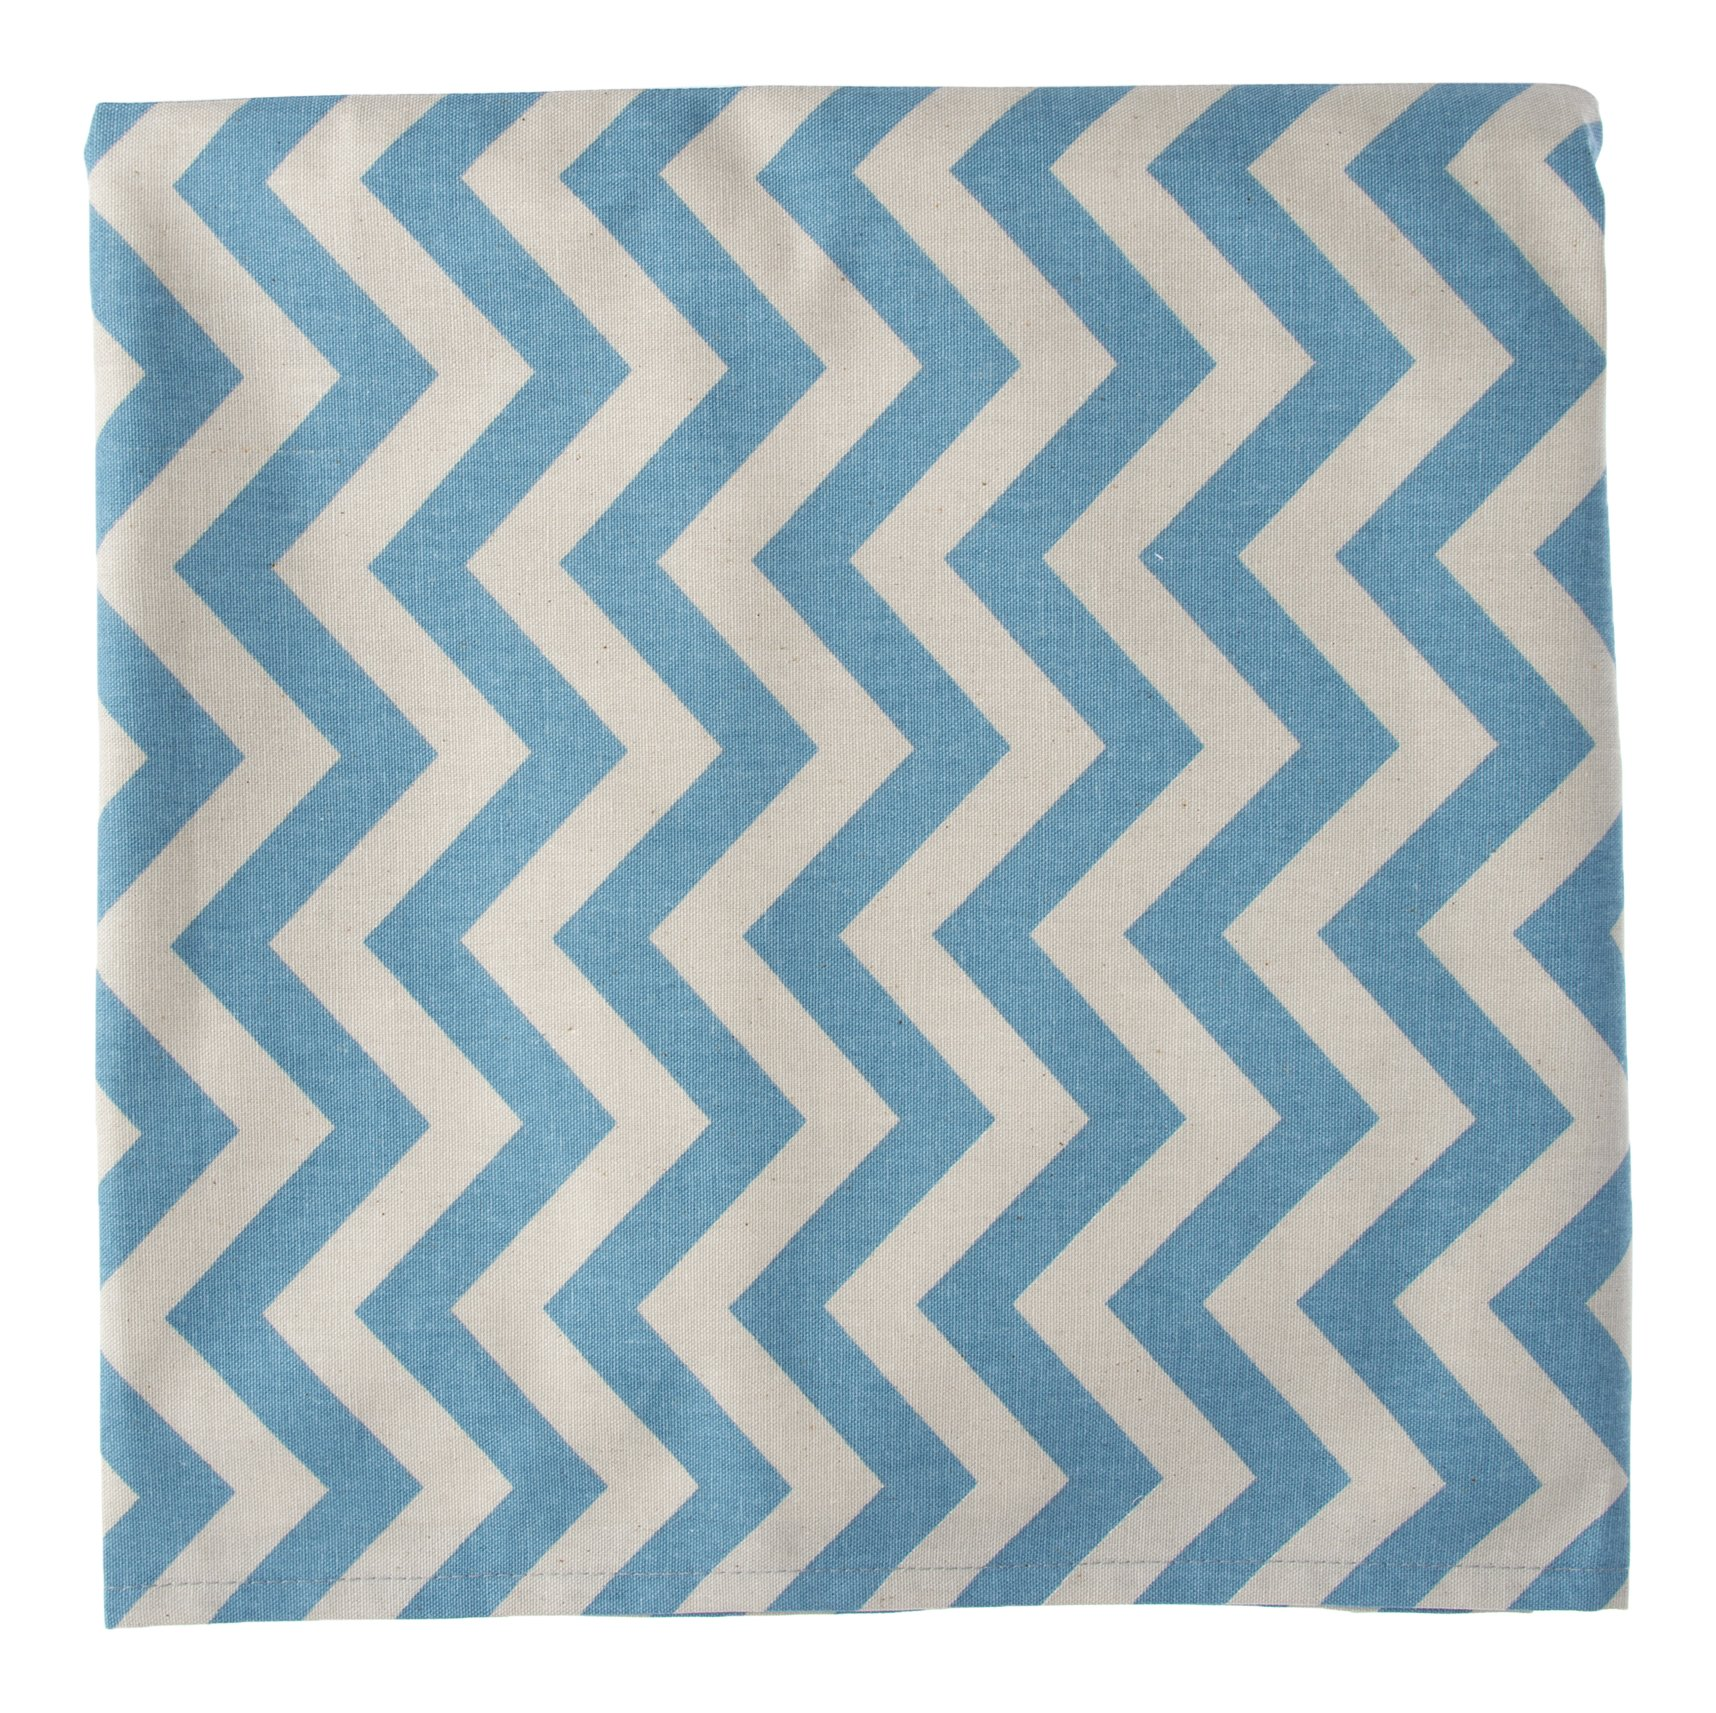 Glenna Jean North Country Queen Skirt, Blue/Grey Chevron by Glenna Jean